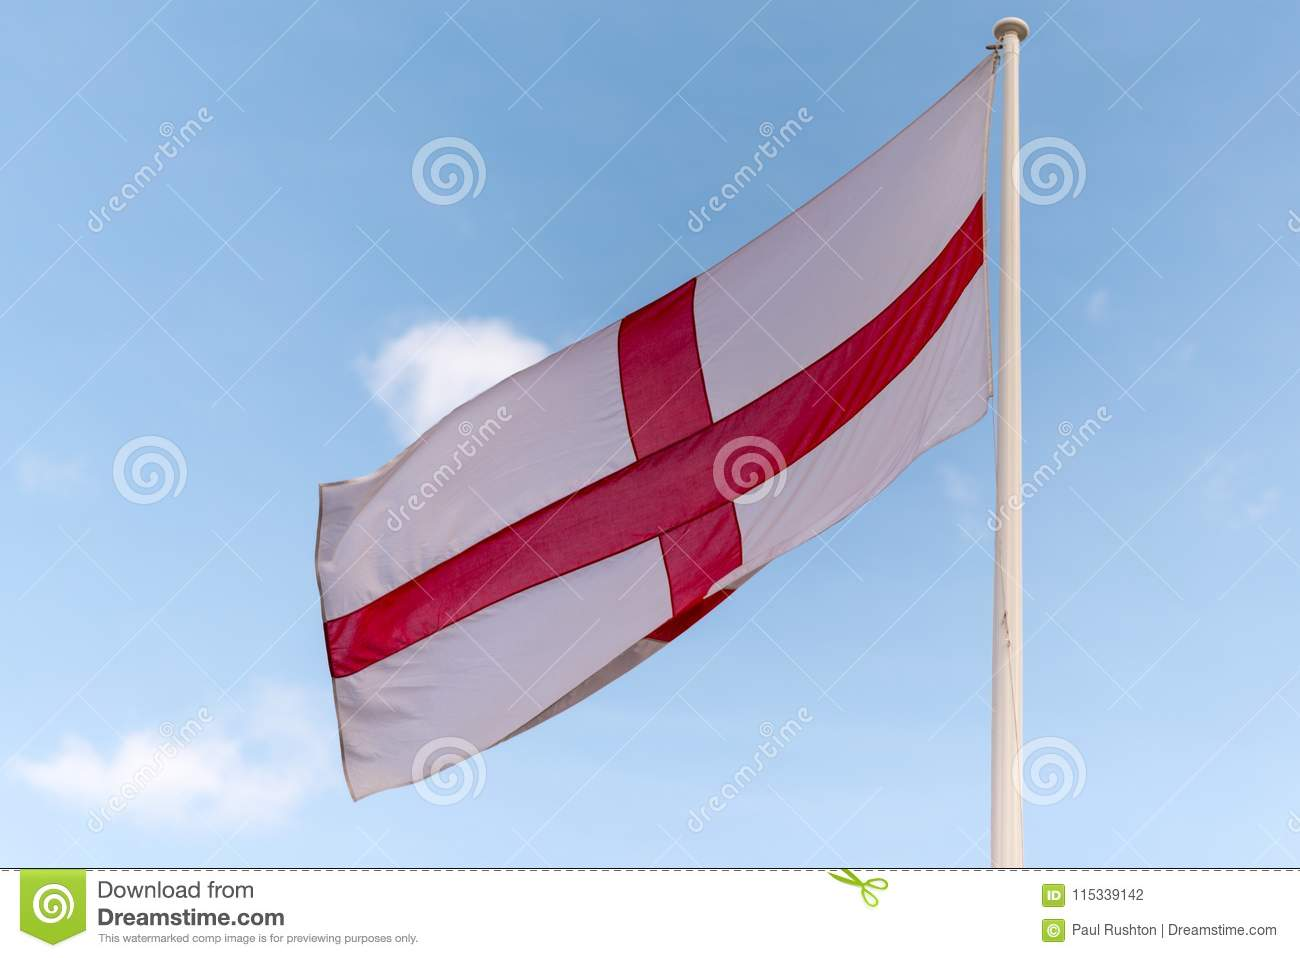 79bb818b English red and white flag stock photo. Image of flag - 115339142